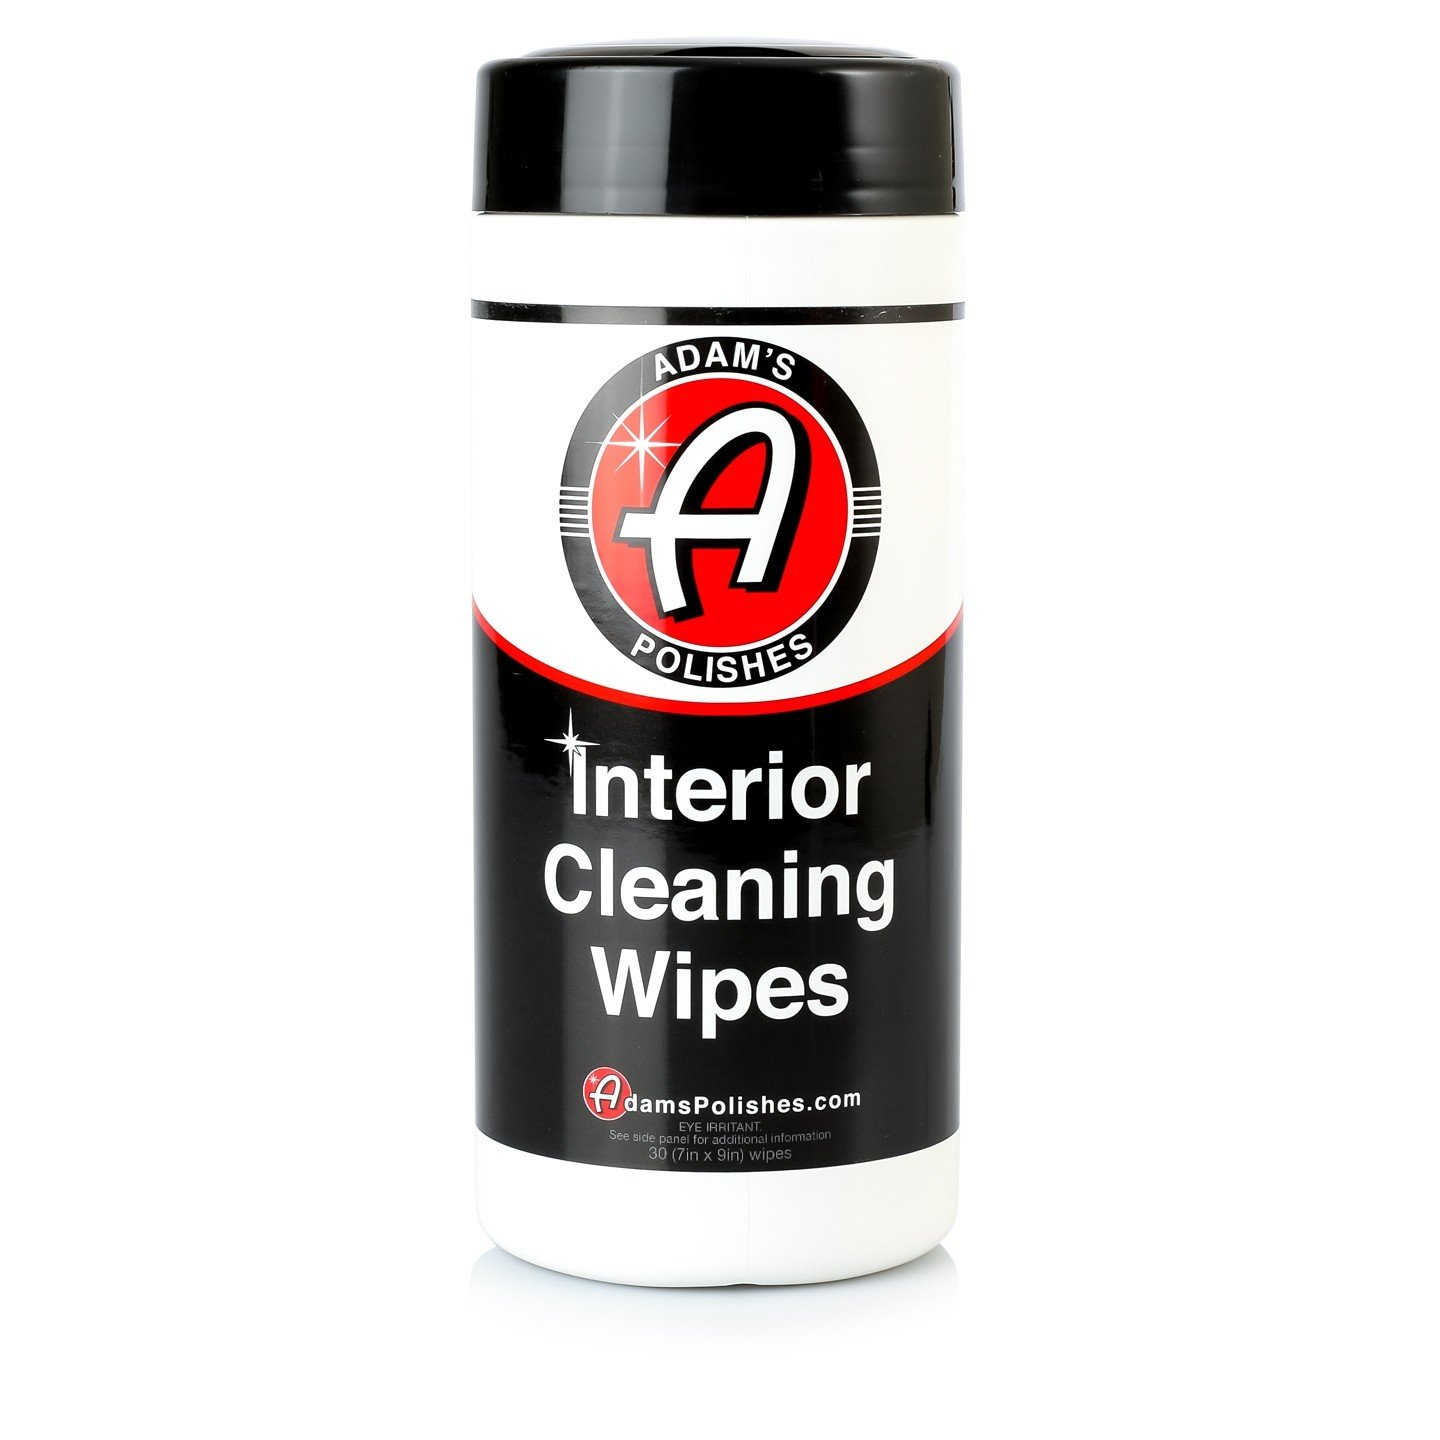 Adam's Interior Cleaning Wipes 30 (7 x 9 inch) Wipes - Powerful Cleaner Removes Embedded Dirt - Great for Leather and Vinyl Steering Wheels, Door Panels, Dashboards, Plastic, and Other Vinyl (1 Pack)